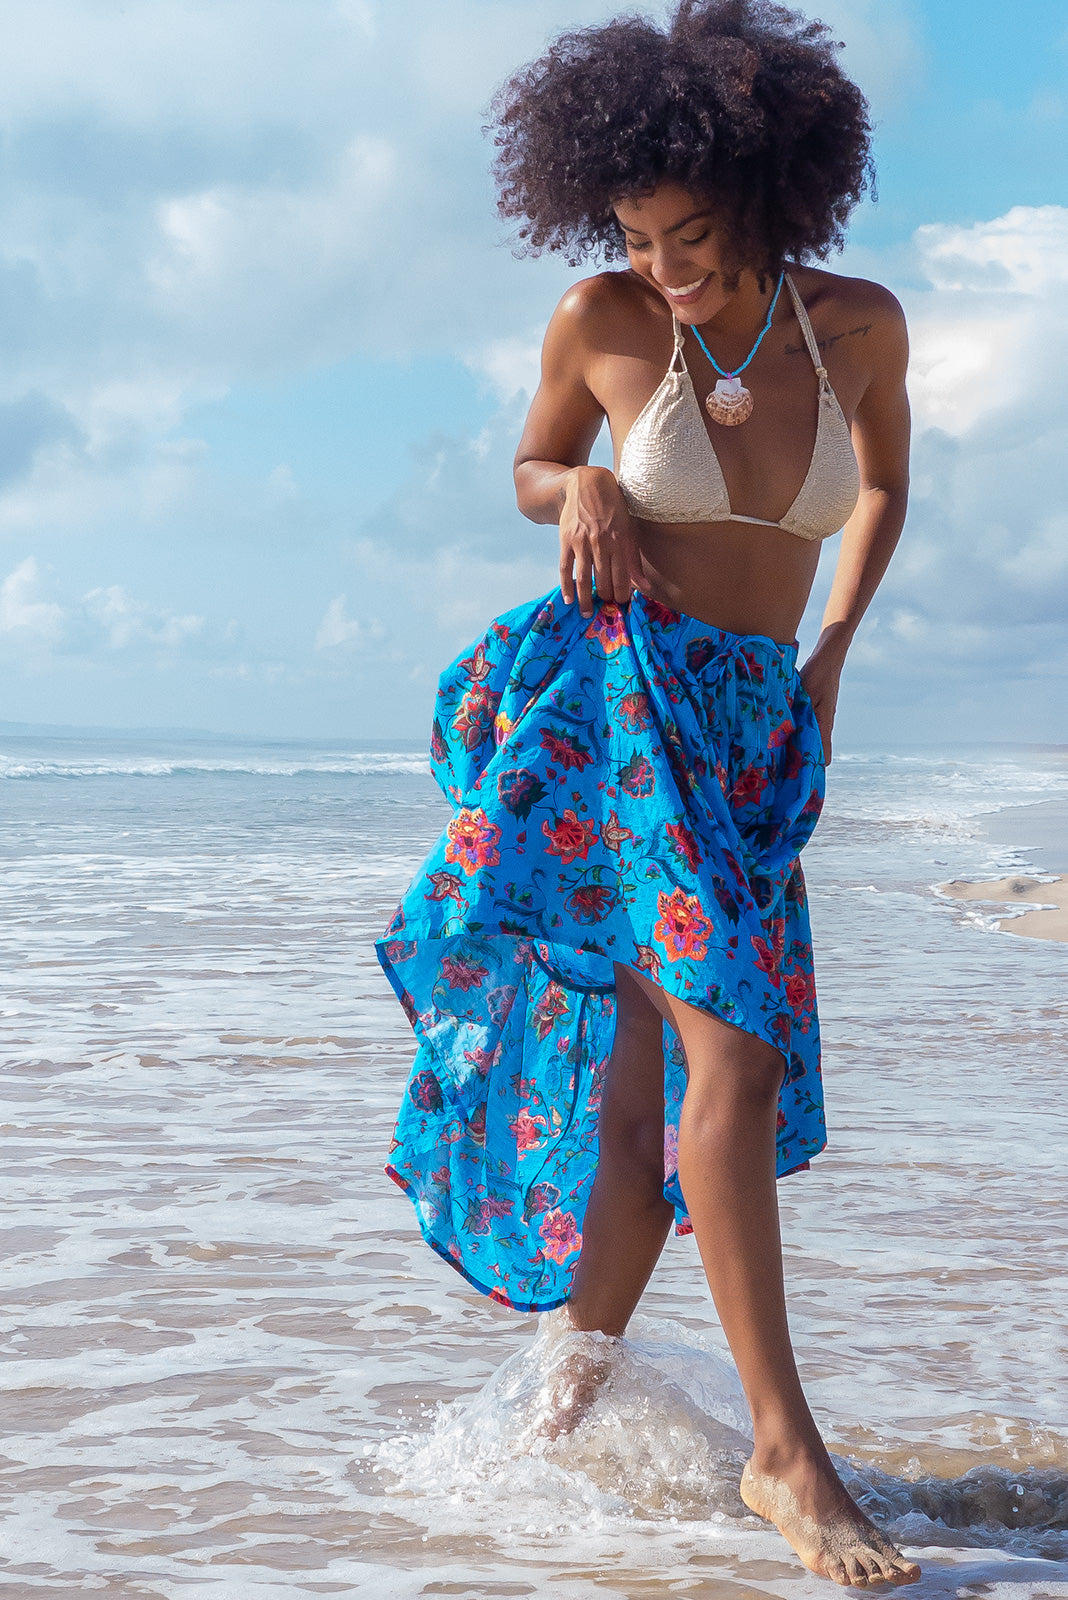 The Valencia Barrio Blue Maxi Skirt is a comfortable slip-on style maxi skirt featuring tiered for fullness, side pockets and 100% cotton in bright blue base with large paisley print.